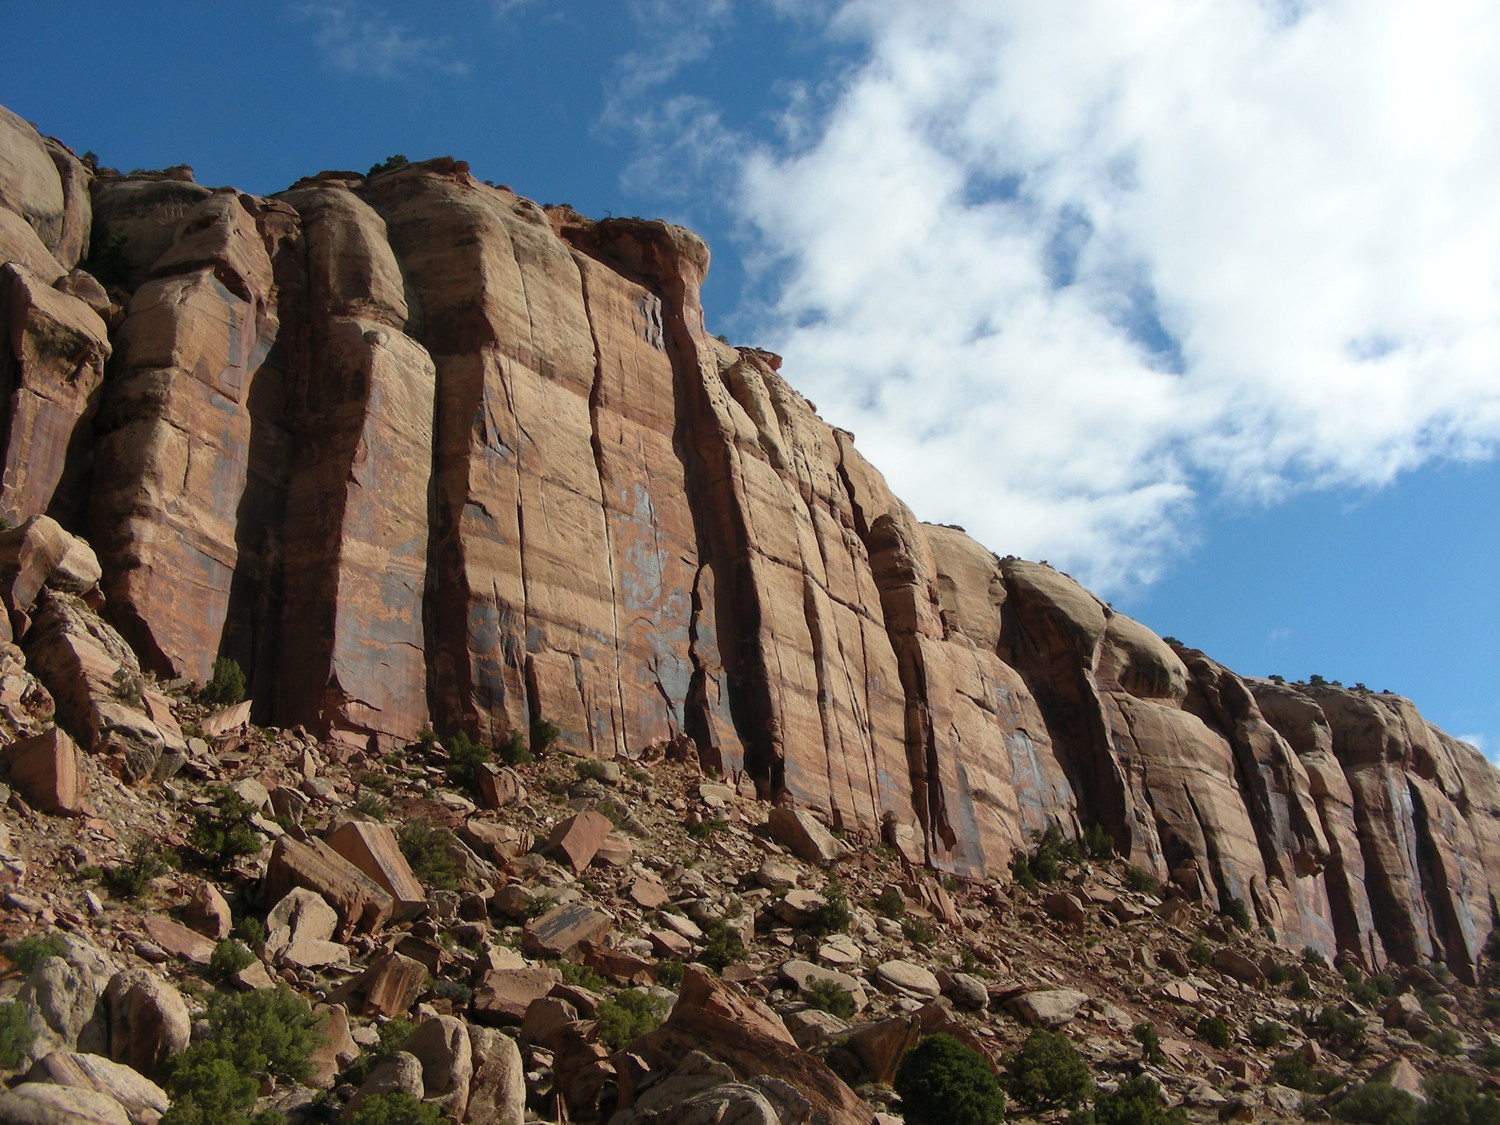 canyon creek hindu dating site The radioisotope methods, long touted as irrefutably dating the earth as countless millions of years old, have repeatedly failed to give reliable and meaningful absolute ages for grand canyon rocks.